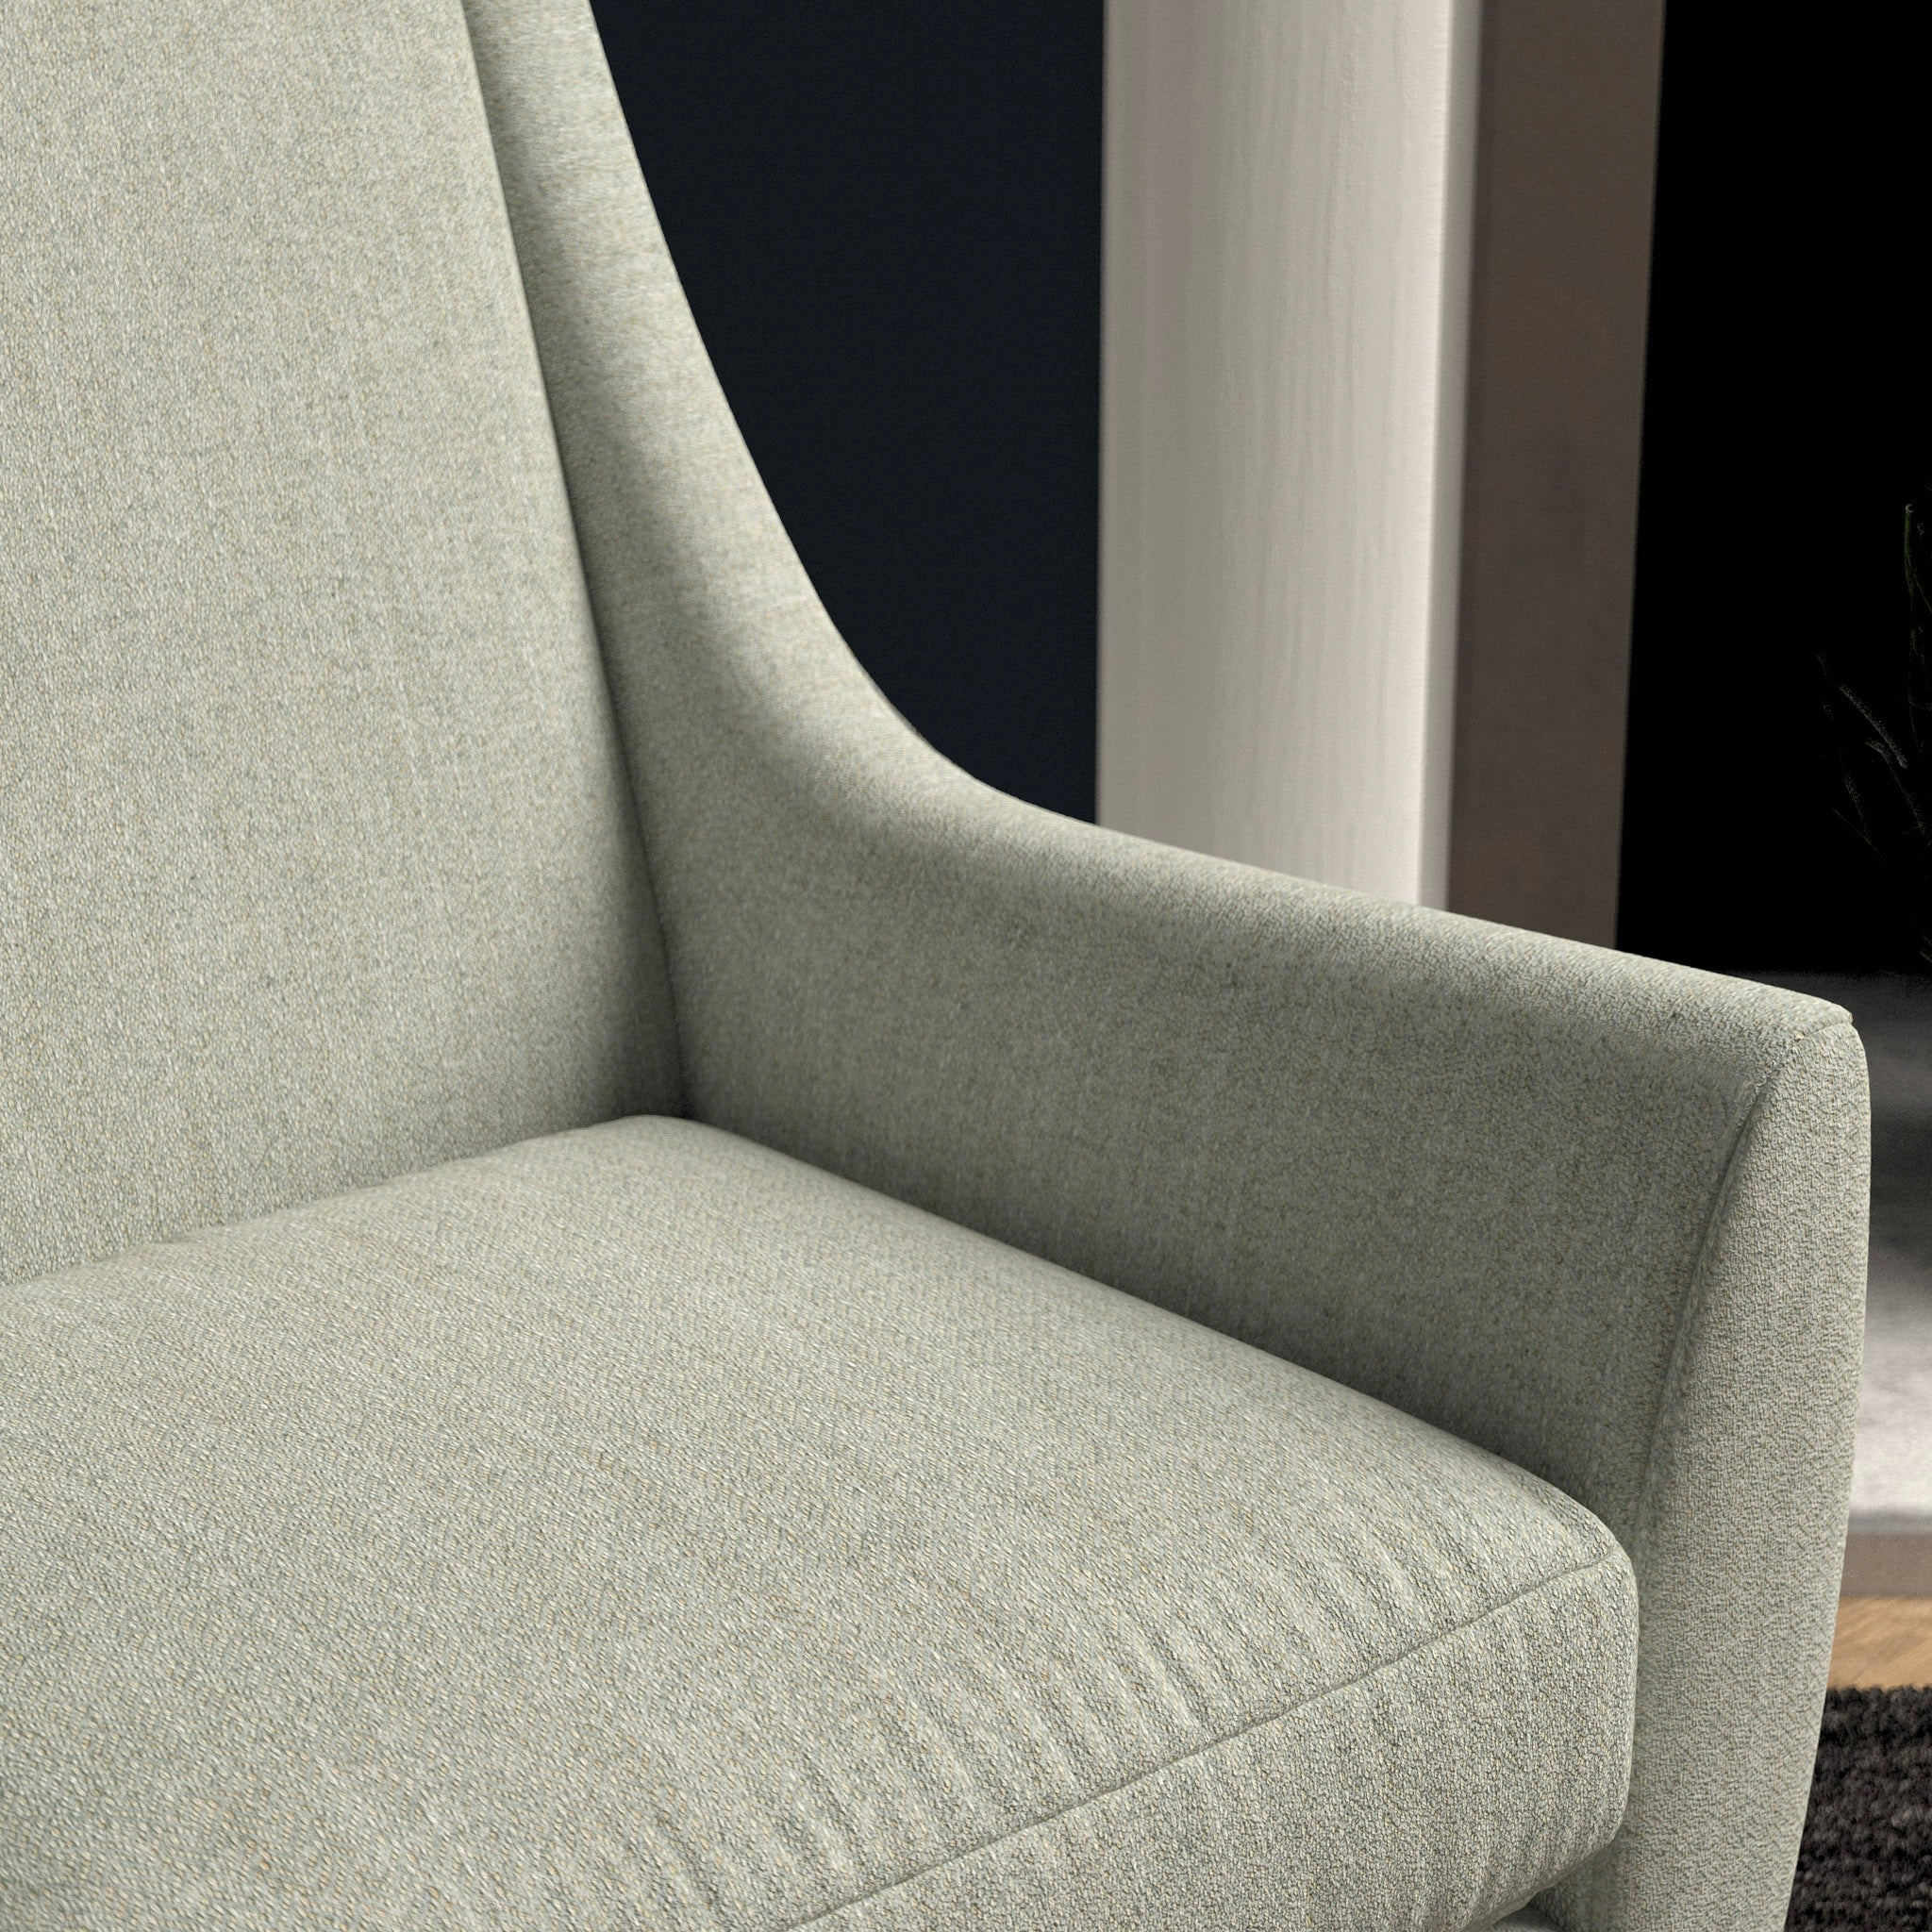 Chair in a light grey herringbone wool upholstery fabric